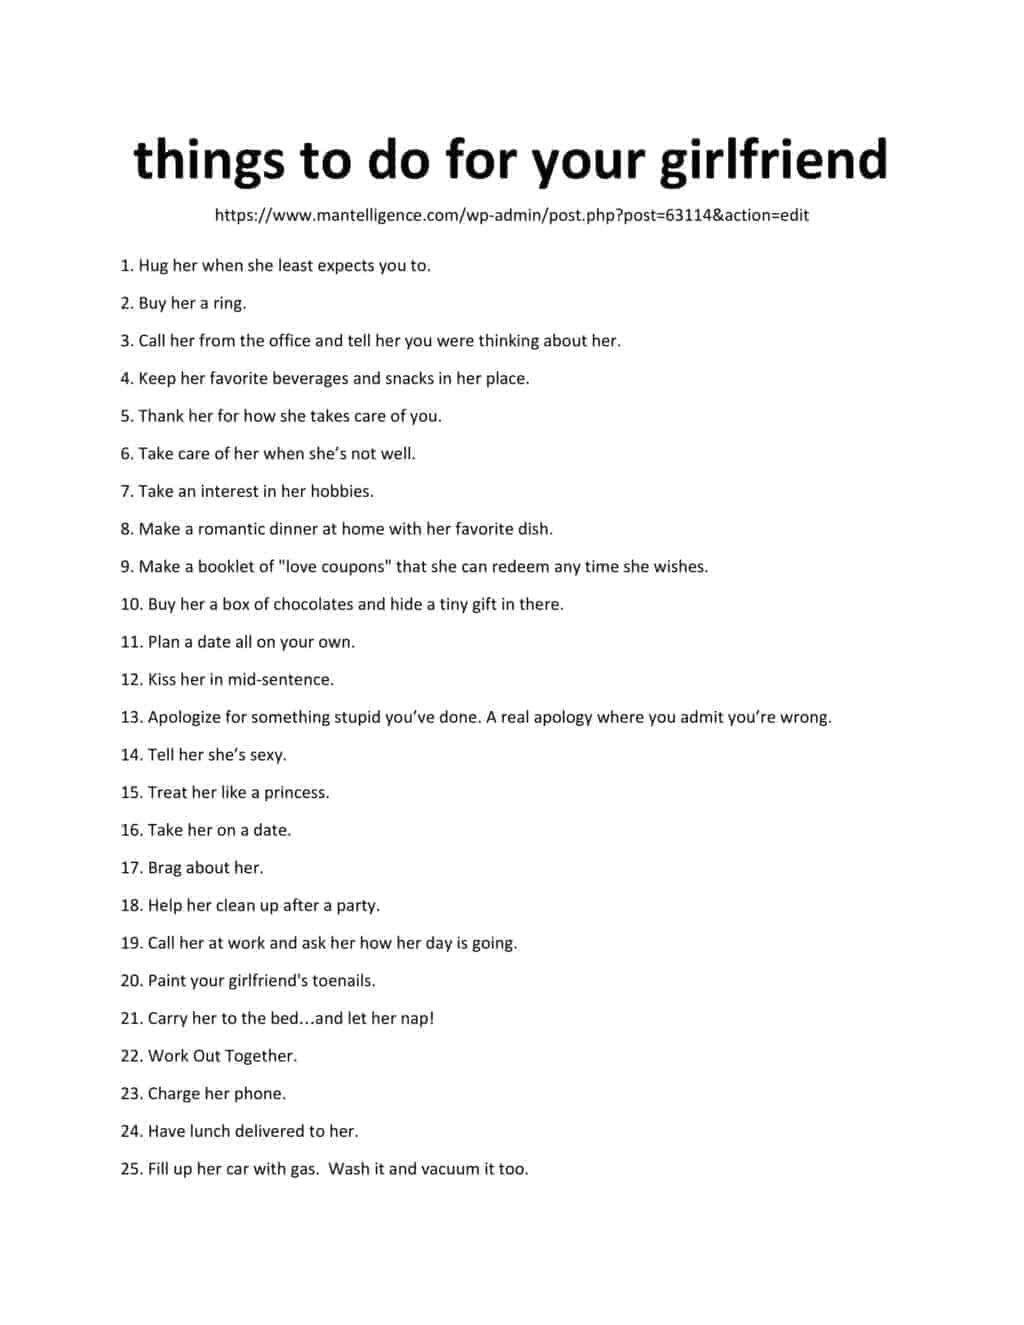 things to do for your girlfriend - Downloadable List of Things to Do For Your Girlfriend